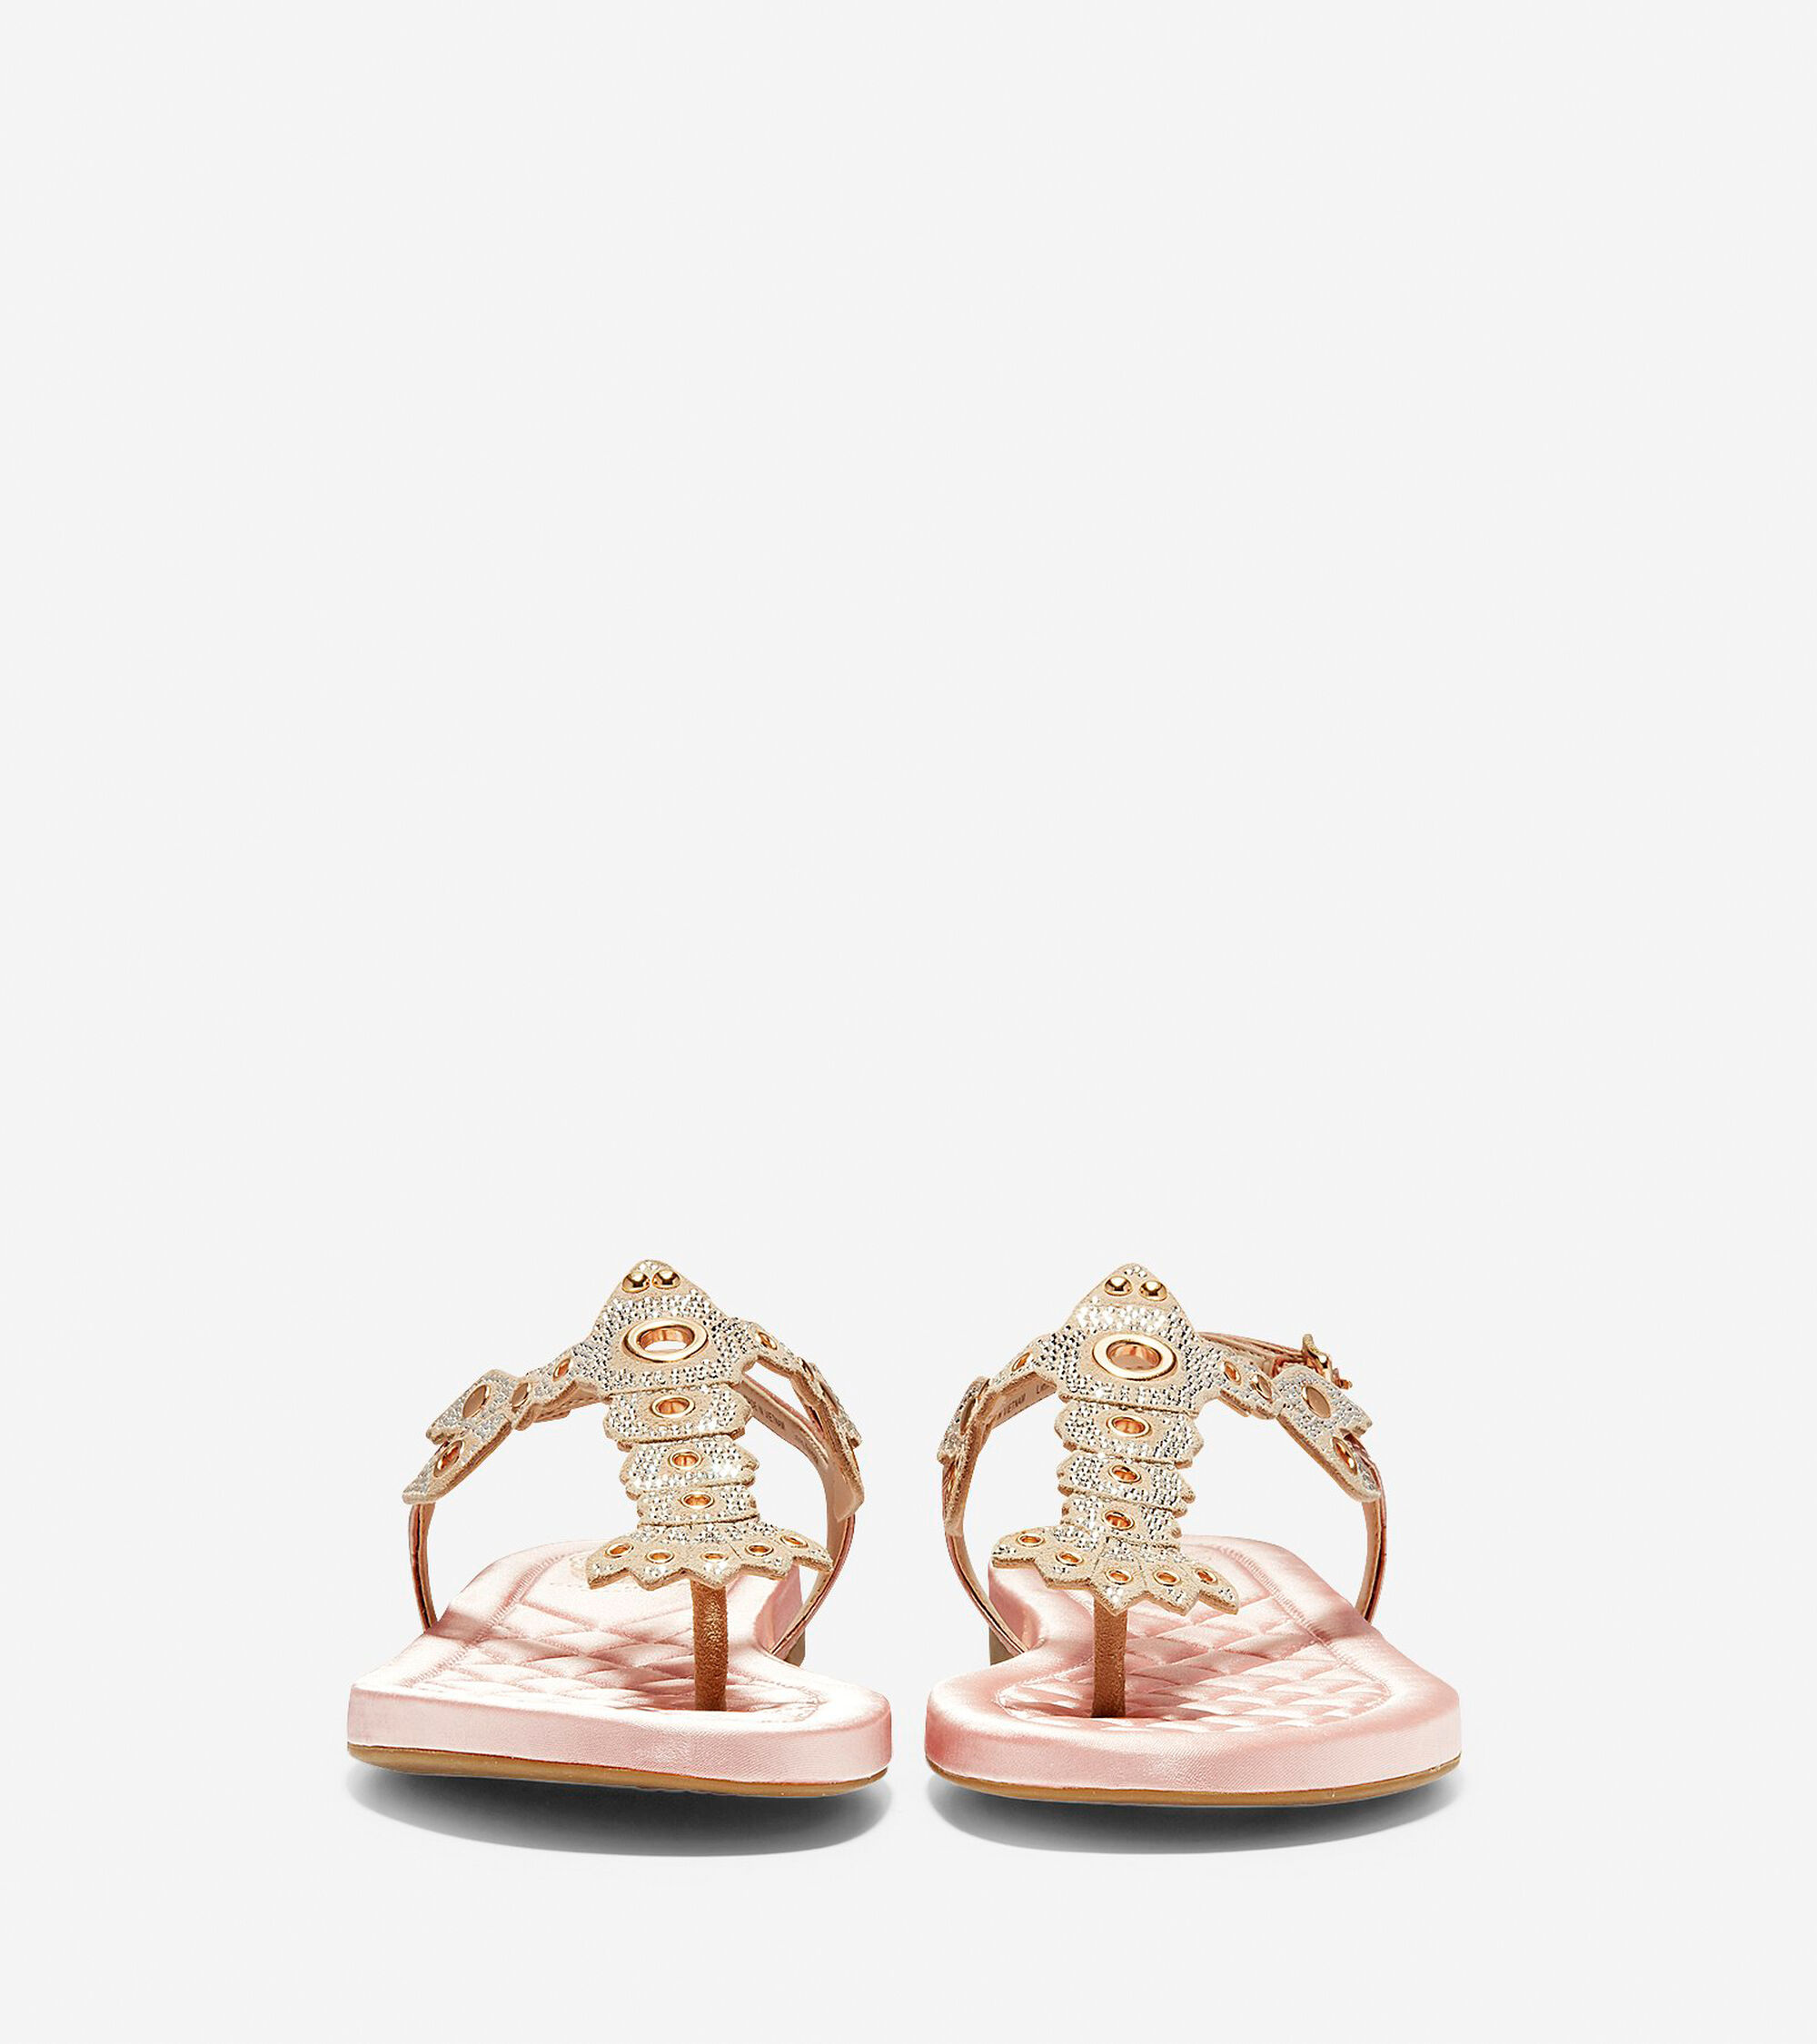 ca053c81f06 Women s Pinch Lobster Sandals in Coral Almond Satin